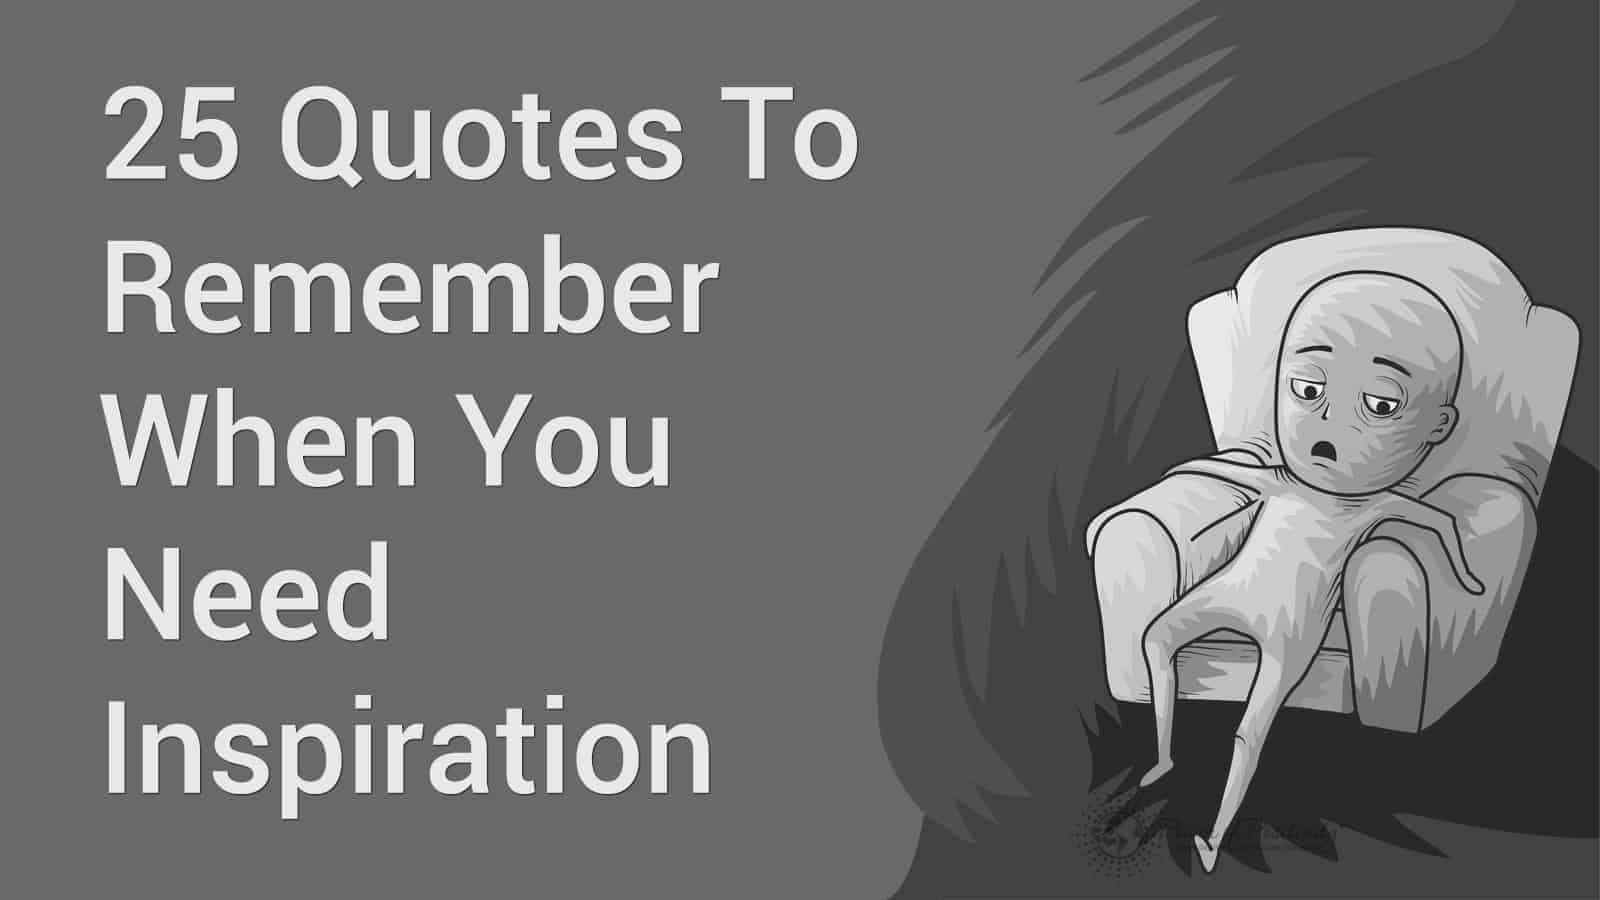 Wwwlife Quotescom Entrancing 25 Quotes To Remember When You Need Inspiration